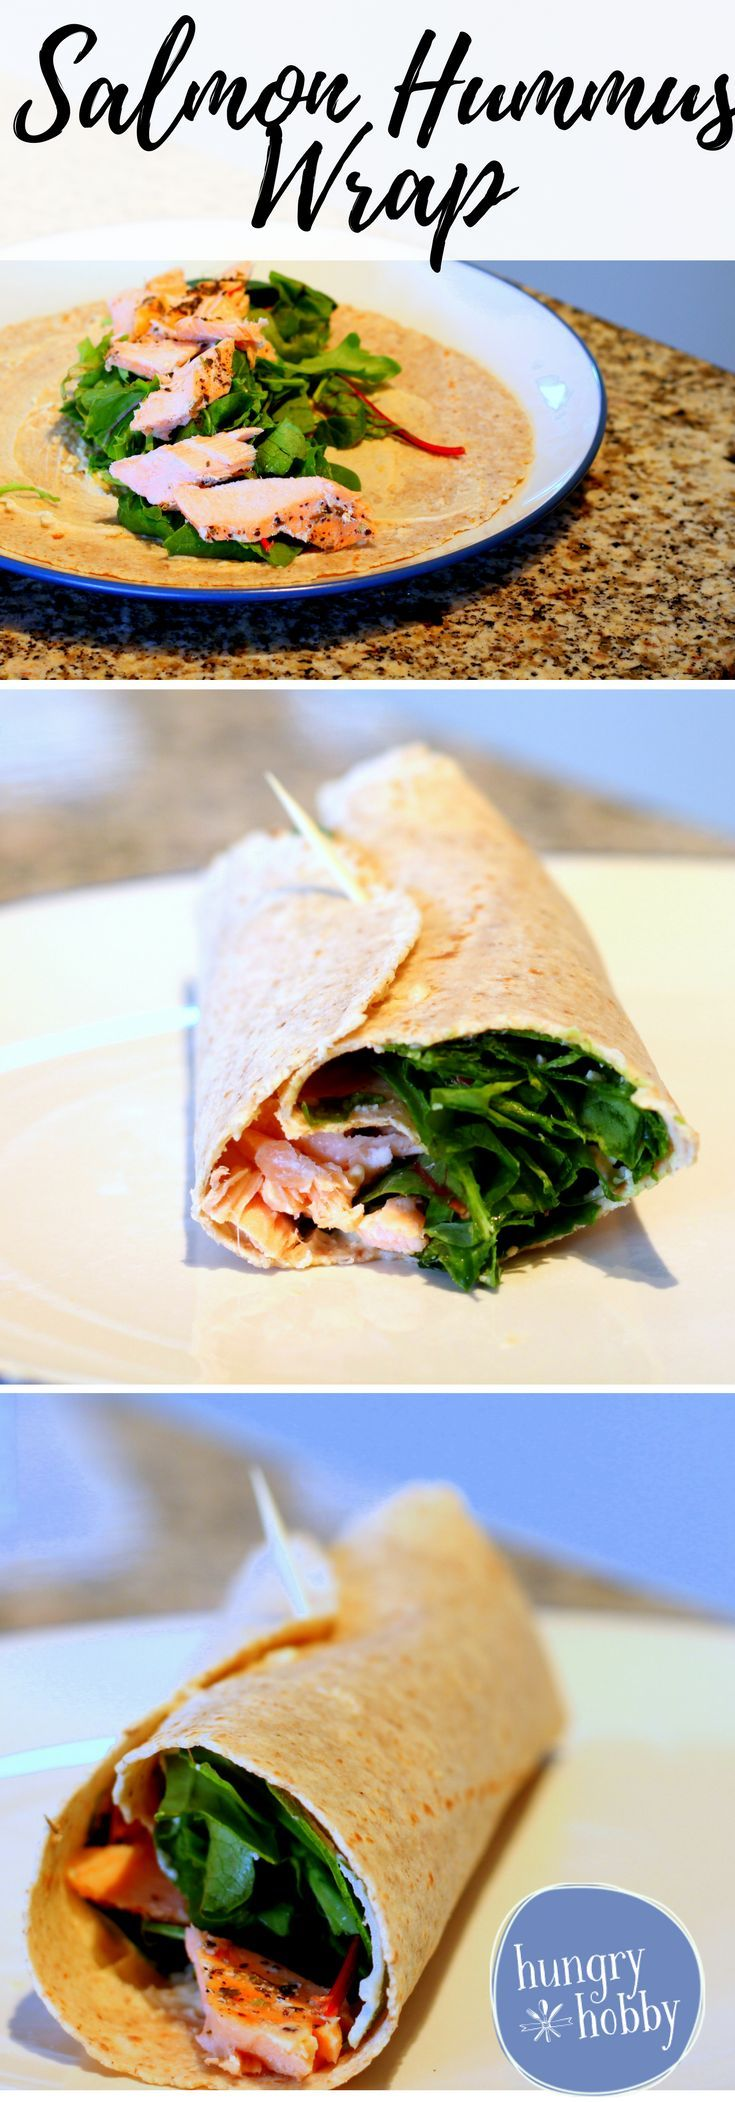 Salmon Hummus Wrap, the best thing to do with your salmon dinner leftovers! via @hungryhobby